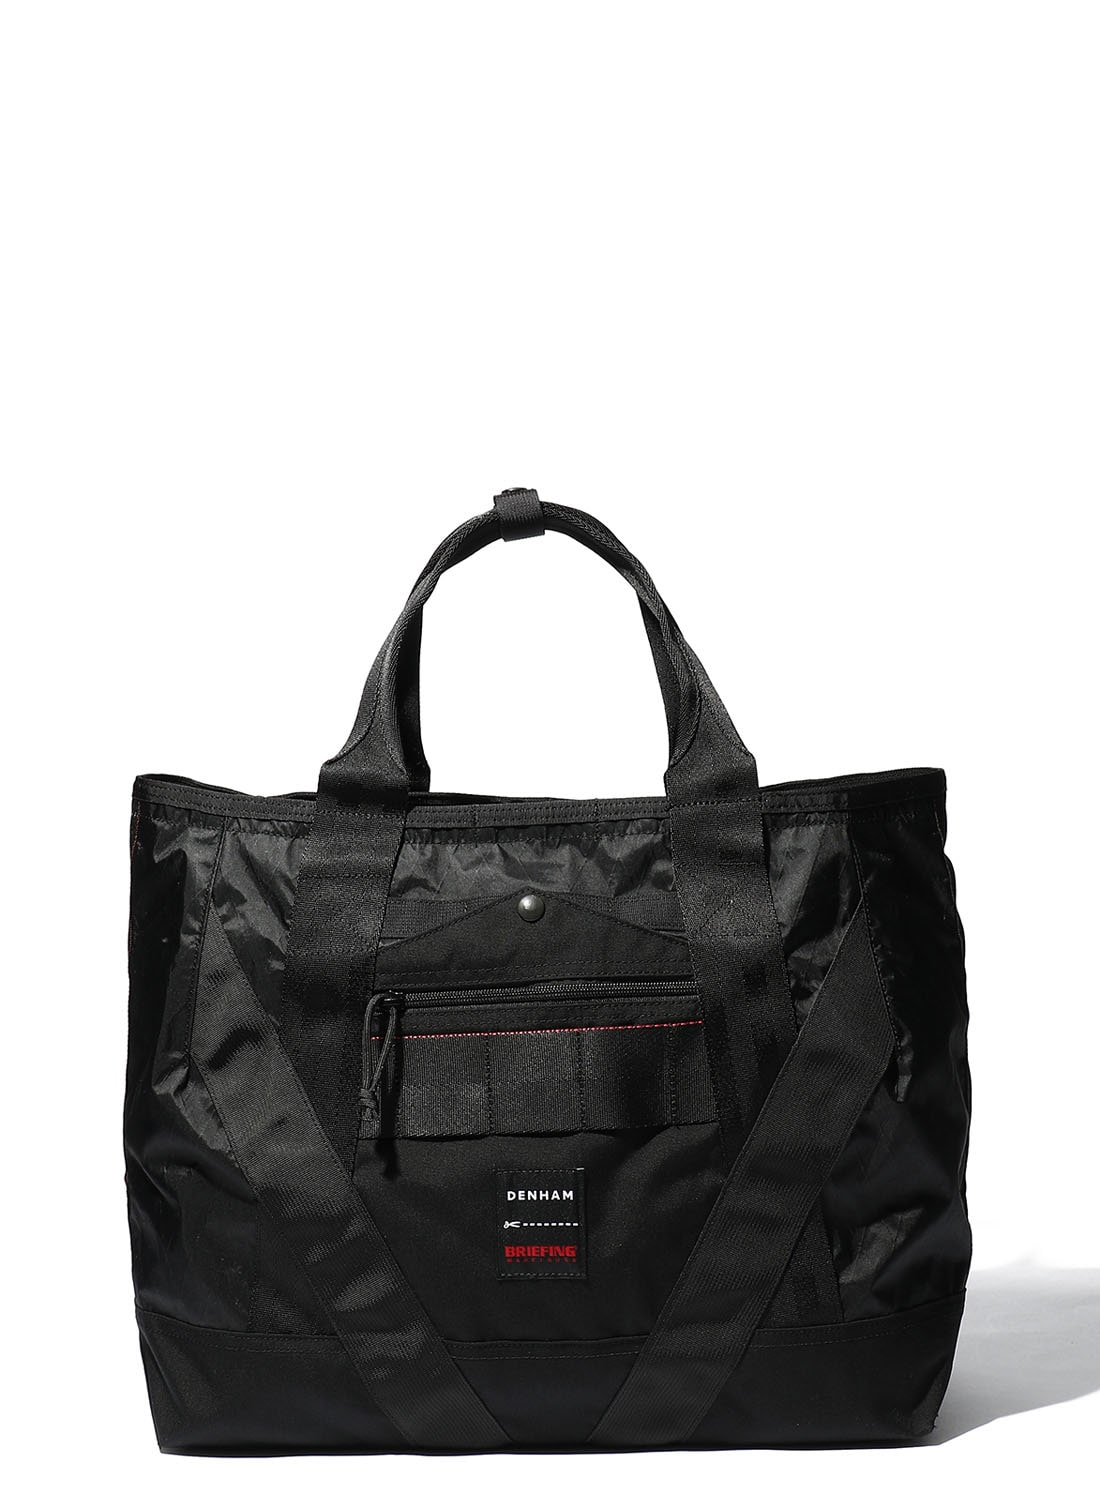 【DENHAM X BRIEFING】 NYLON COMBI TOTE